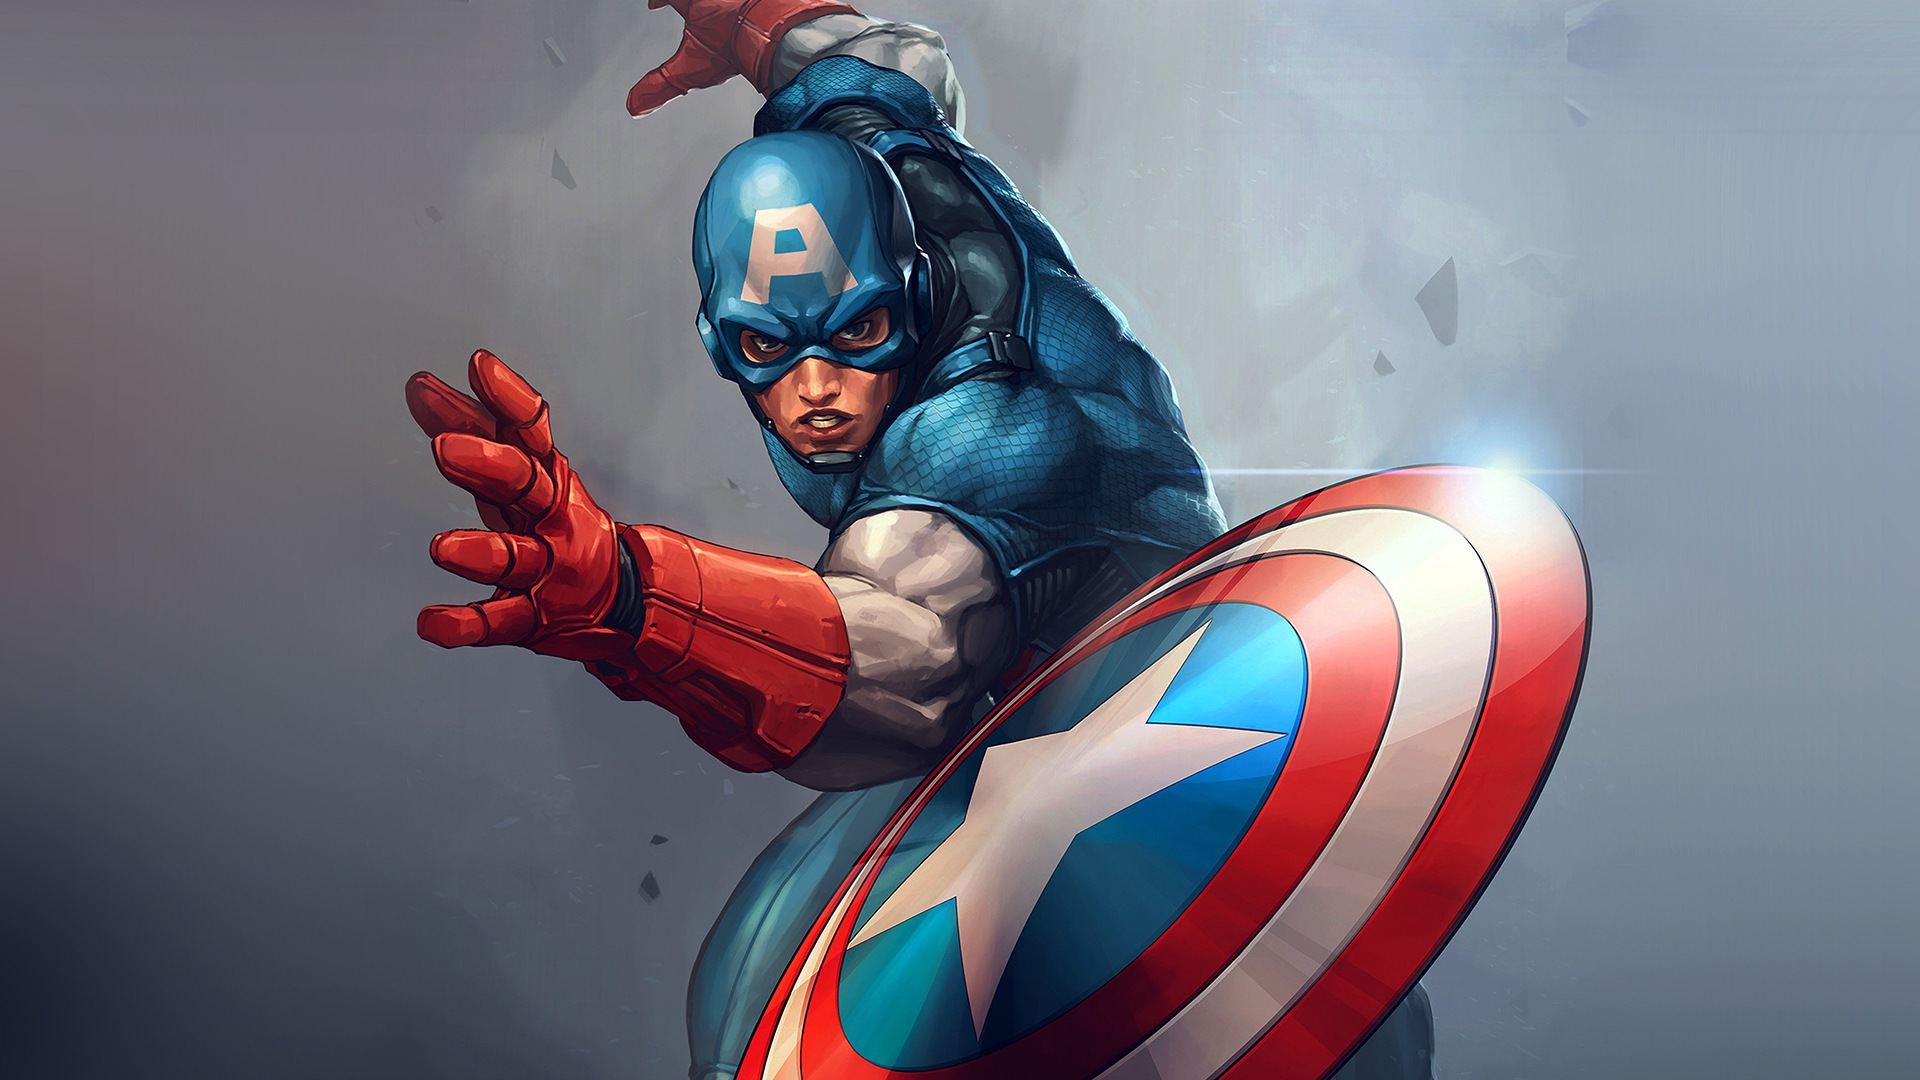 Captain America HD Wallpaper | Background Image | 1920x1080 | ID:793350 - Wallpaper Abyss